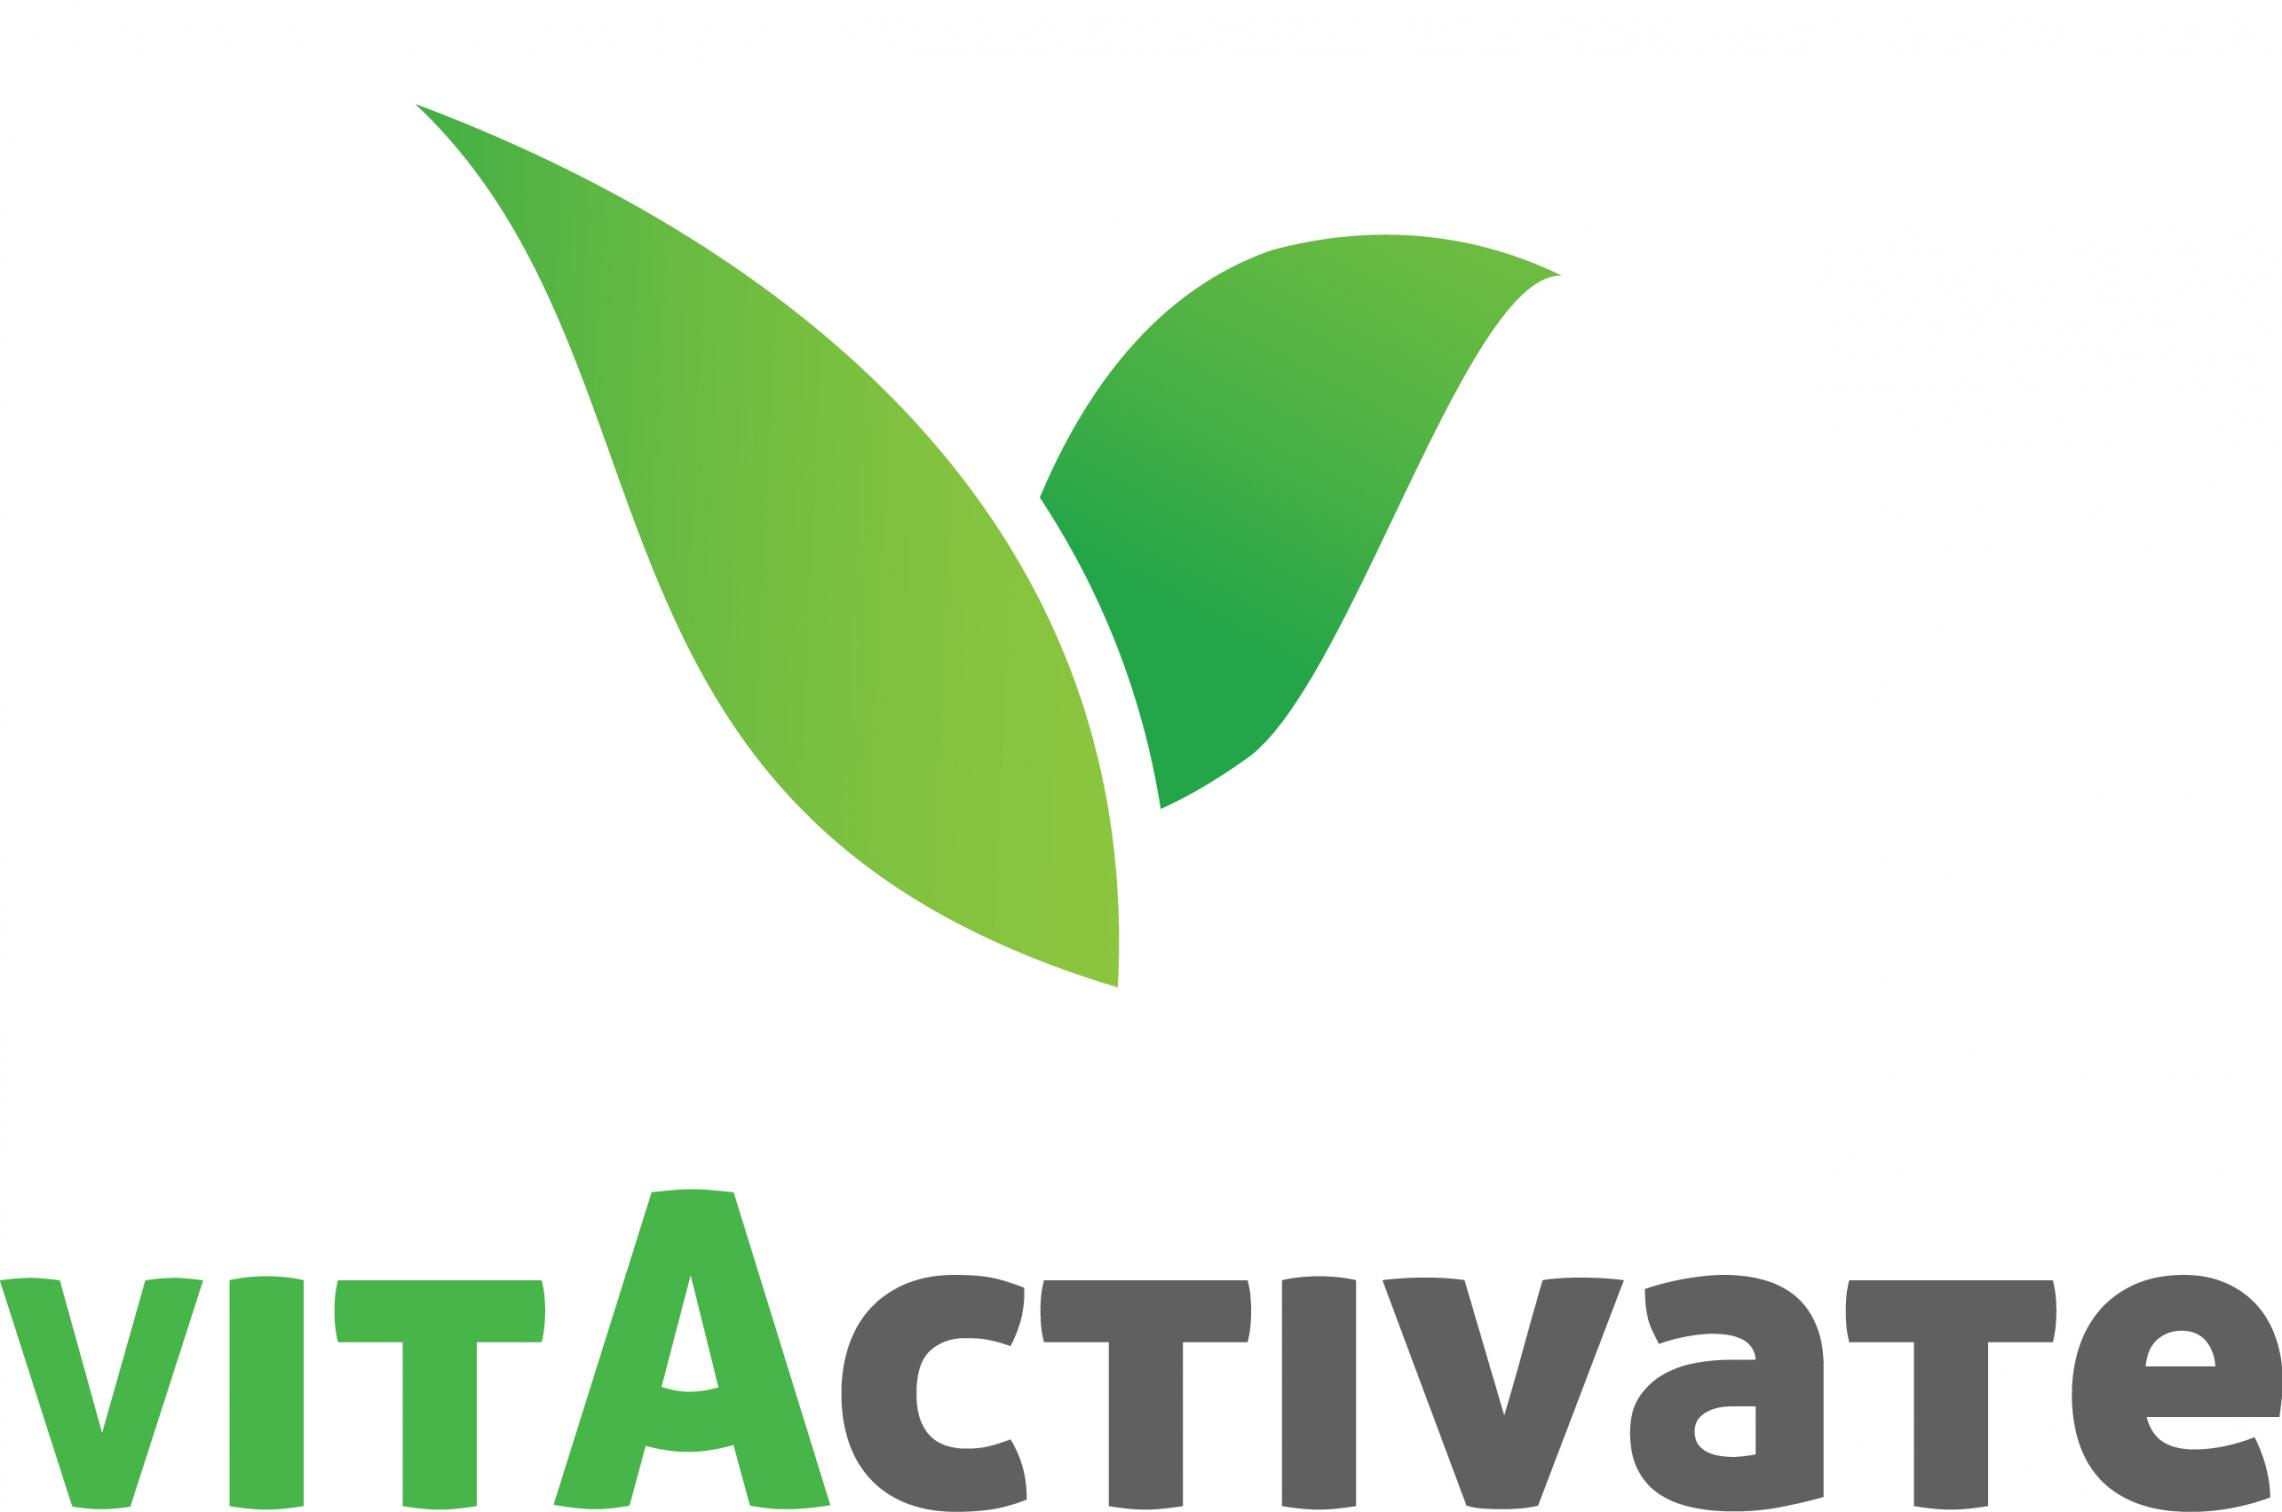 ChiActivate Logo